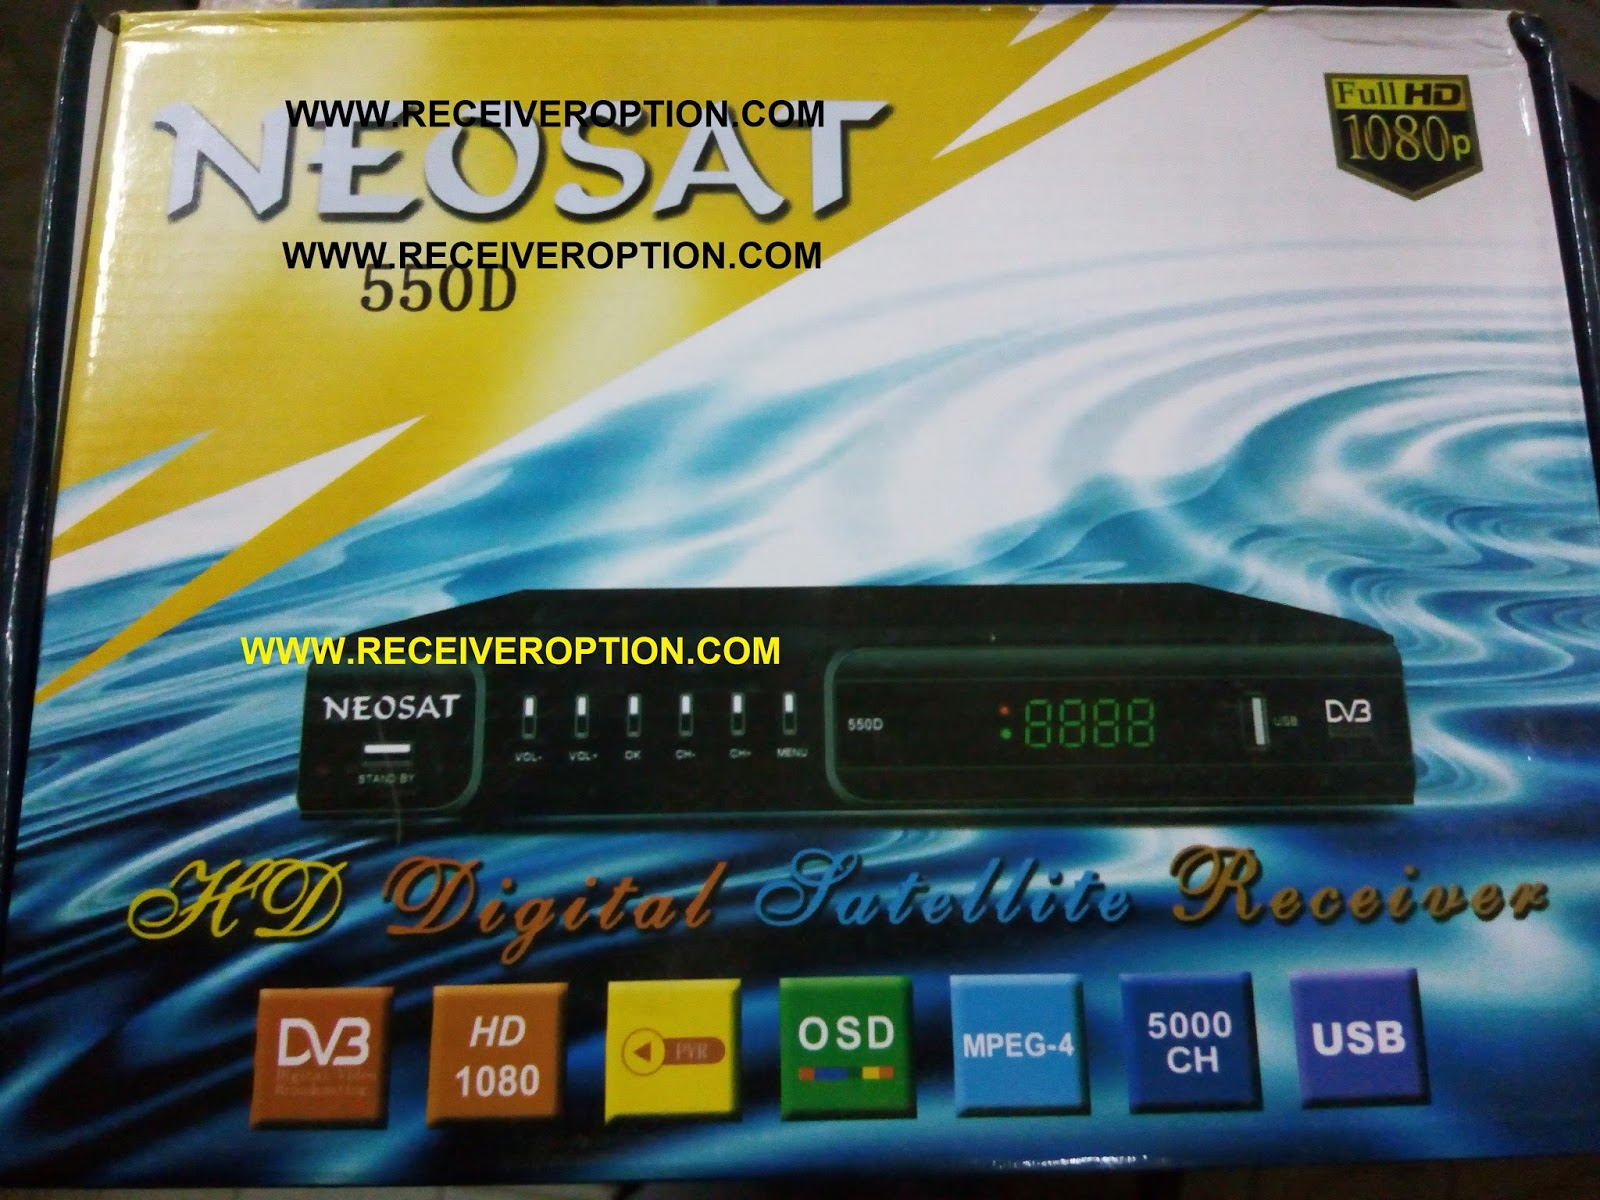 NEOSAT 550D HD RECEIVER AUTO ROLL POWERVU KEY SOFTWARE - HOW TO